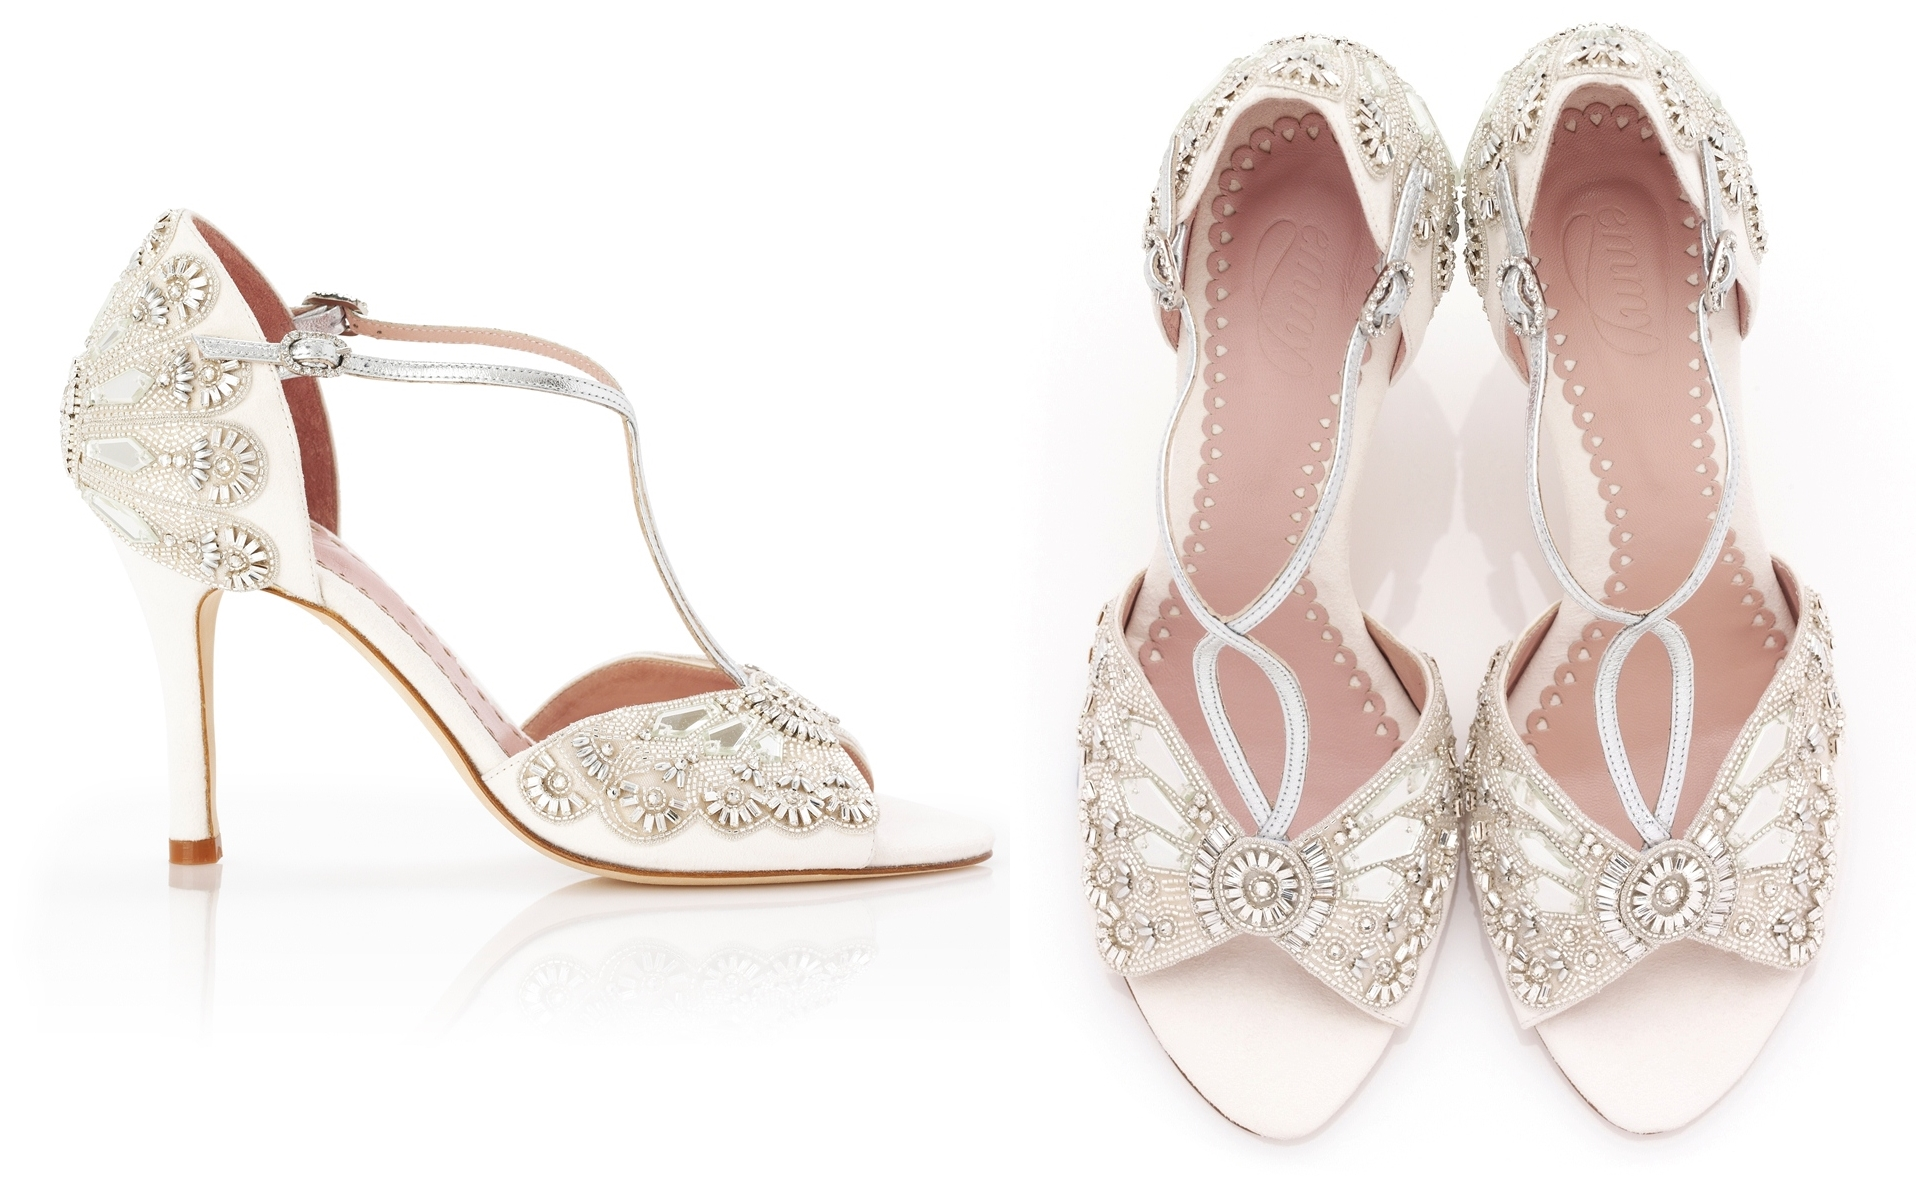 Cinderella in Ivory from the Celeste Collection by Emmy